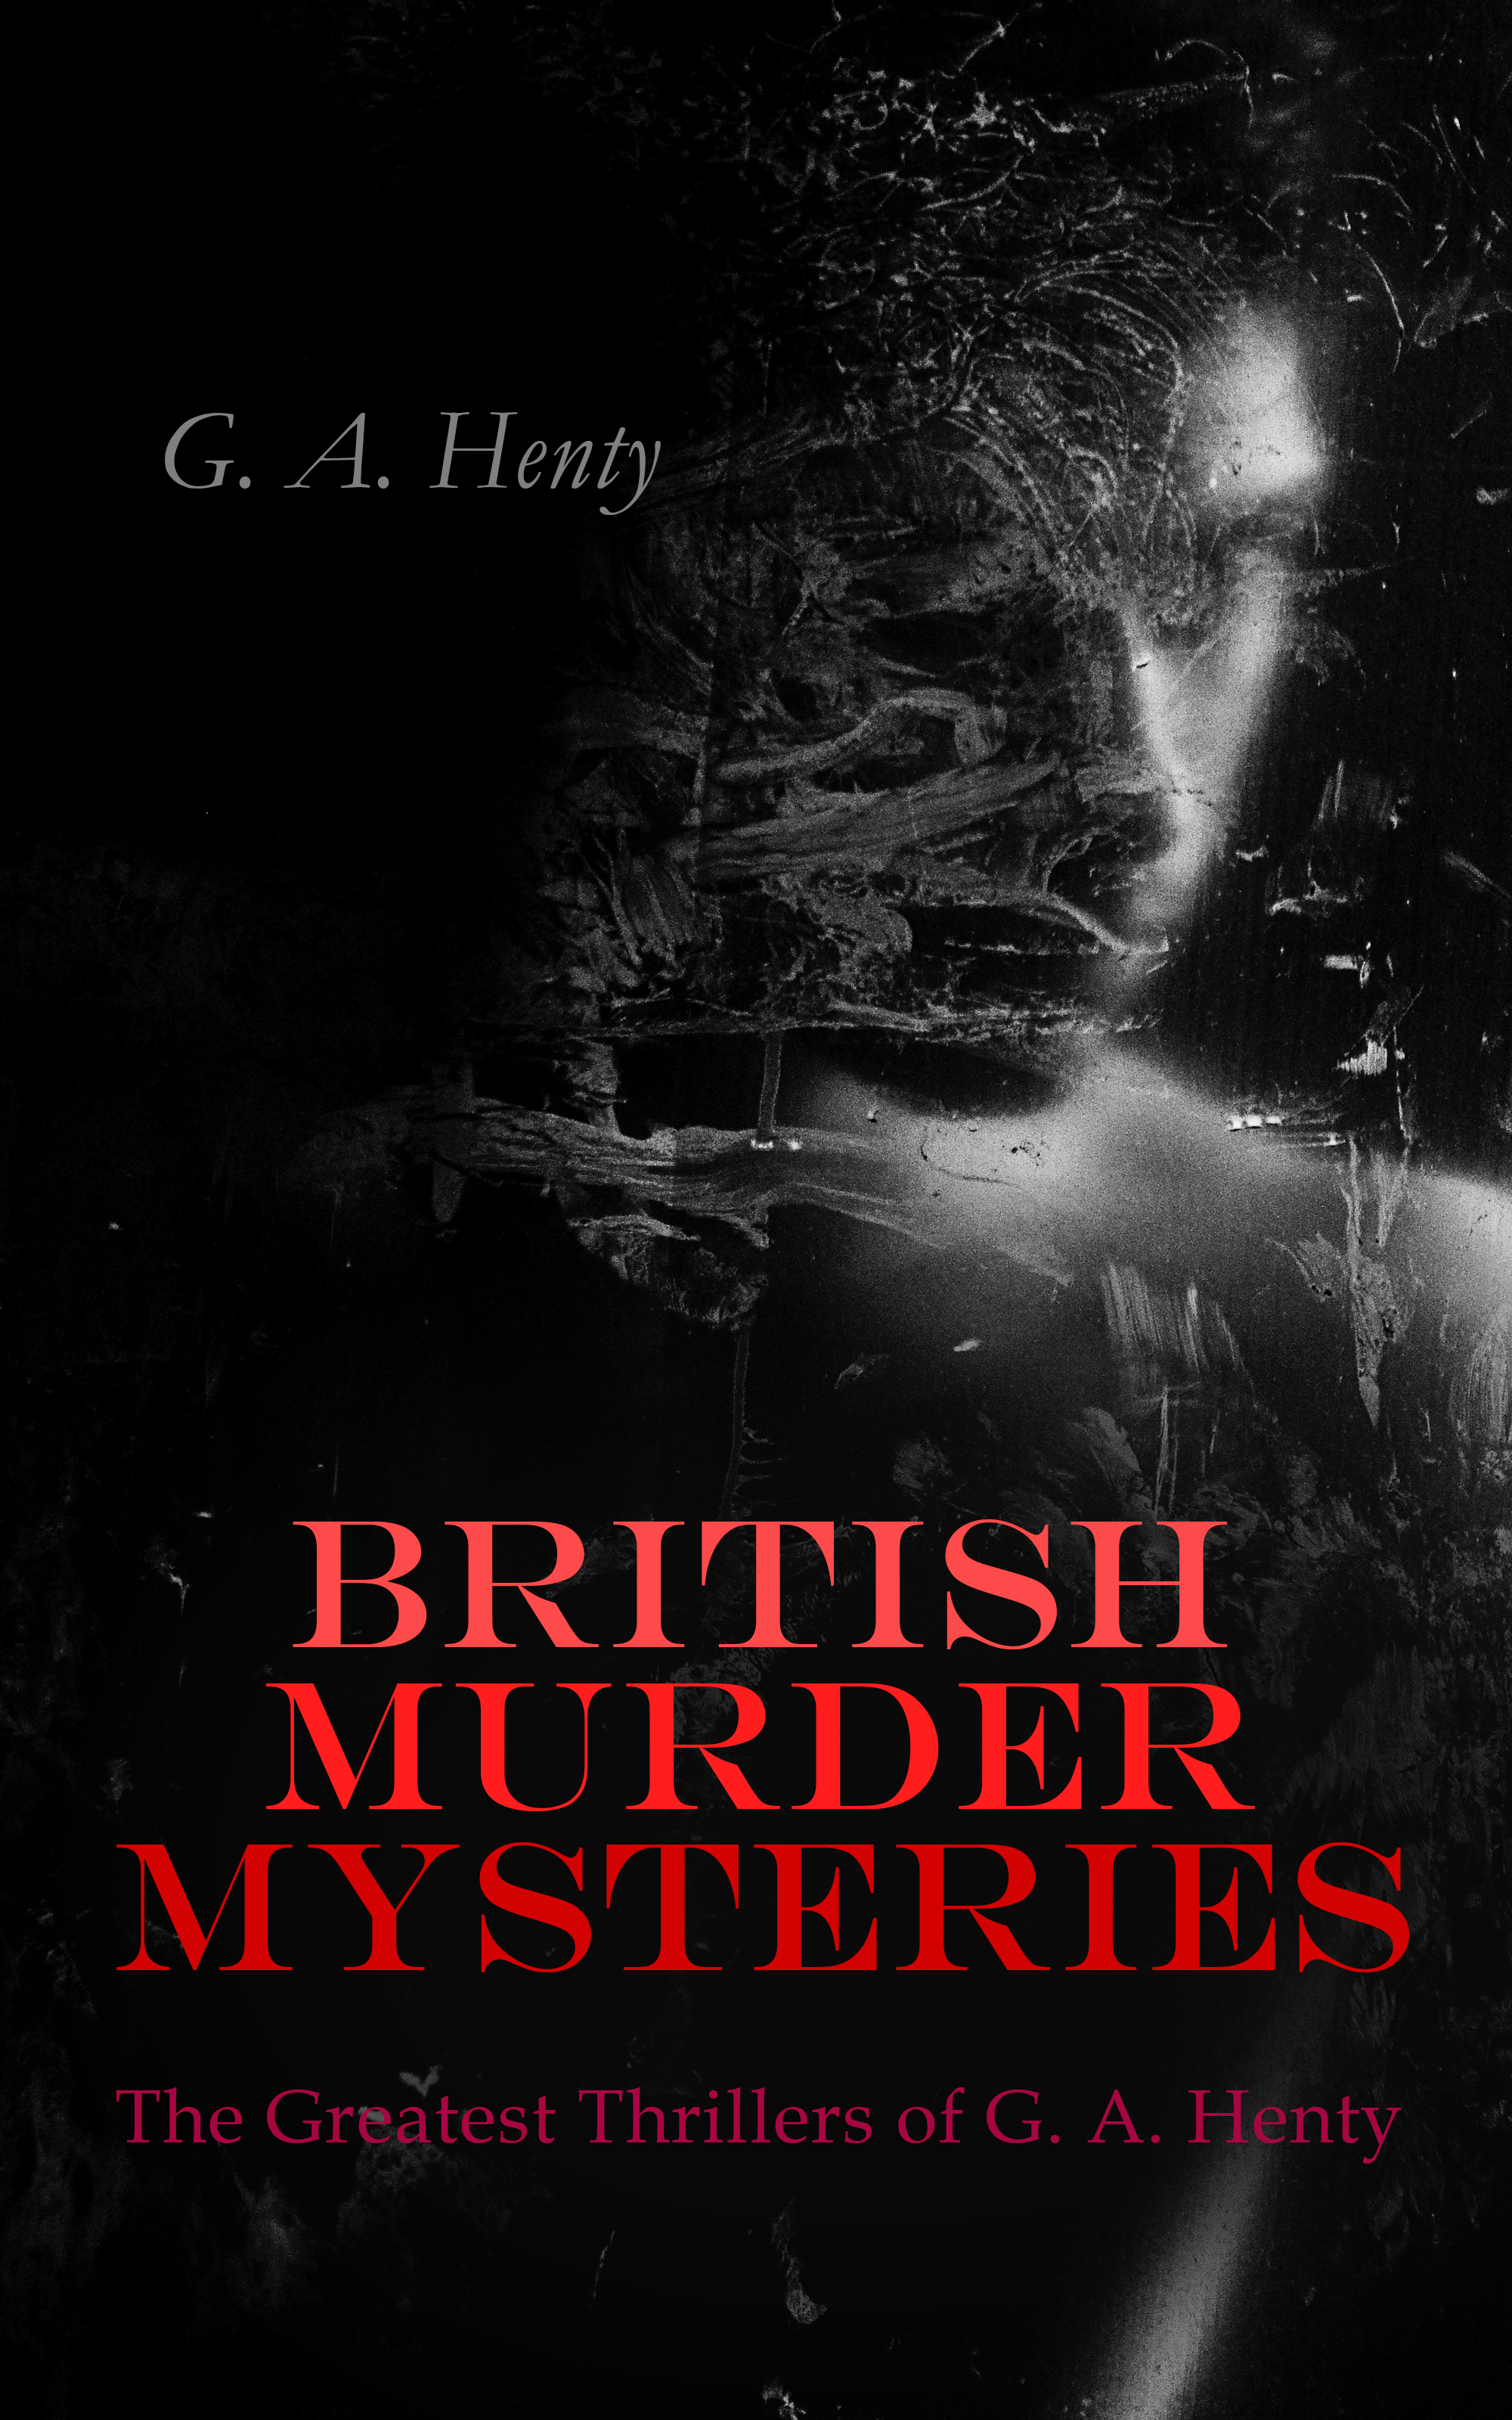 G. A. Henty BRITISH MURDER MYSTERIES: The Greatest Thrillers of G. A. Henty a vision of murder